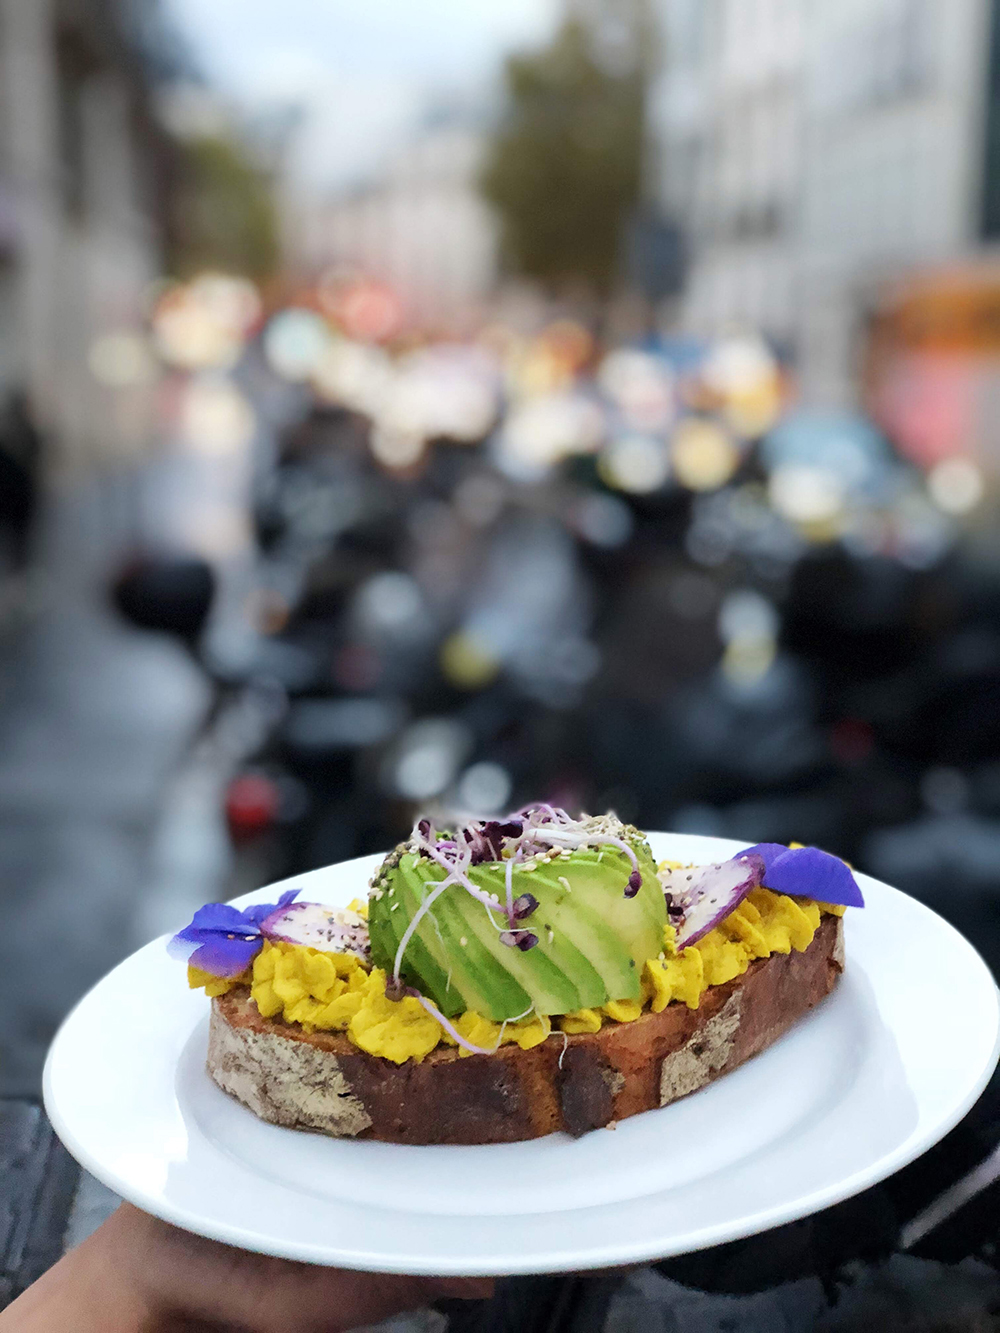 Le premier avocado bar de France a ouvert à Paris